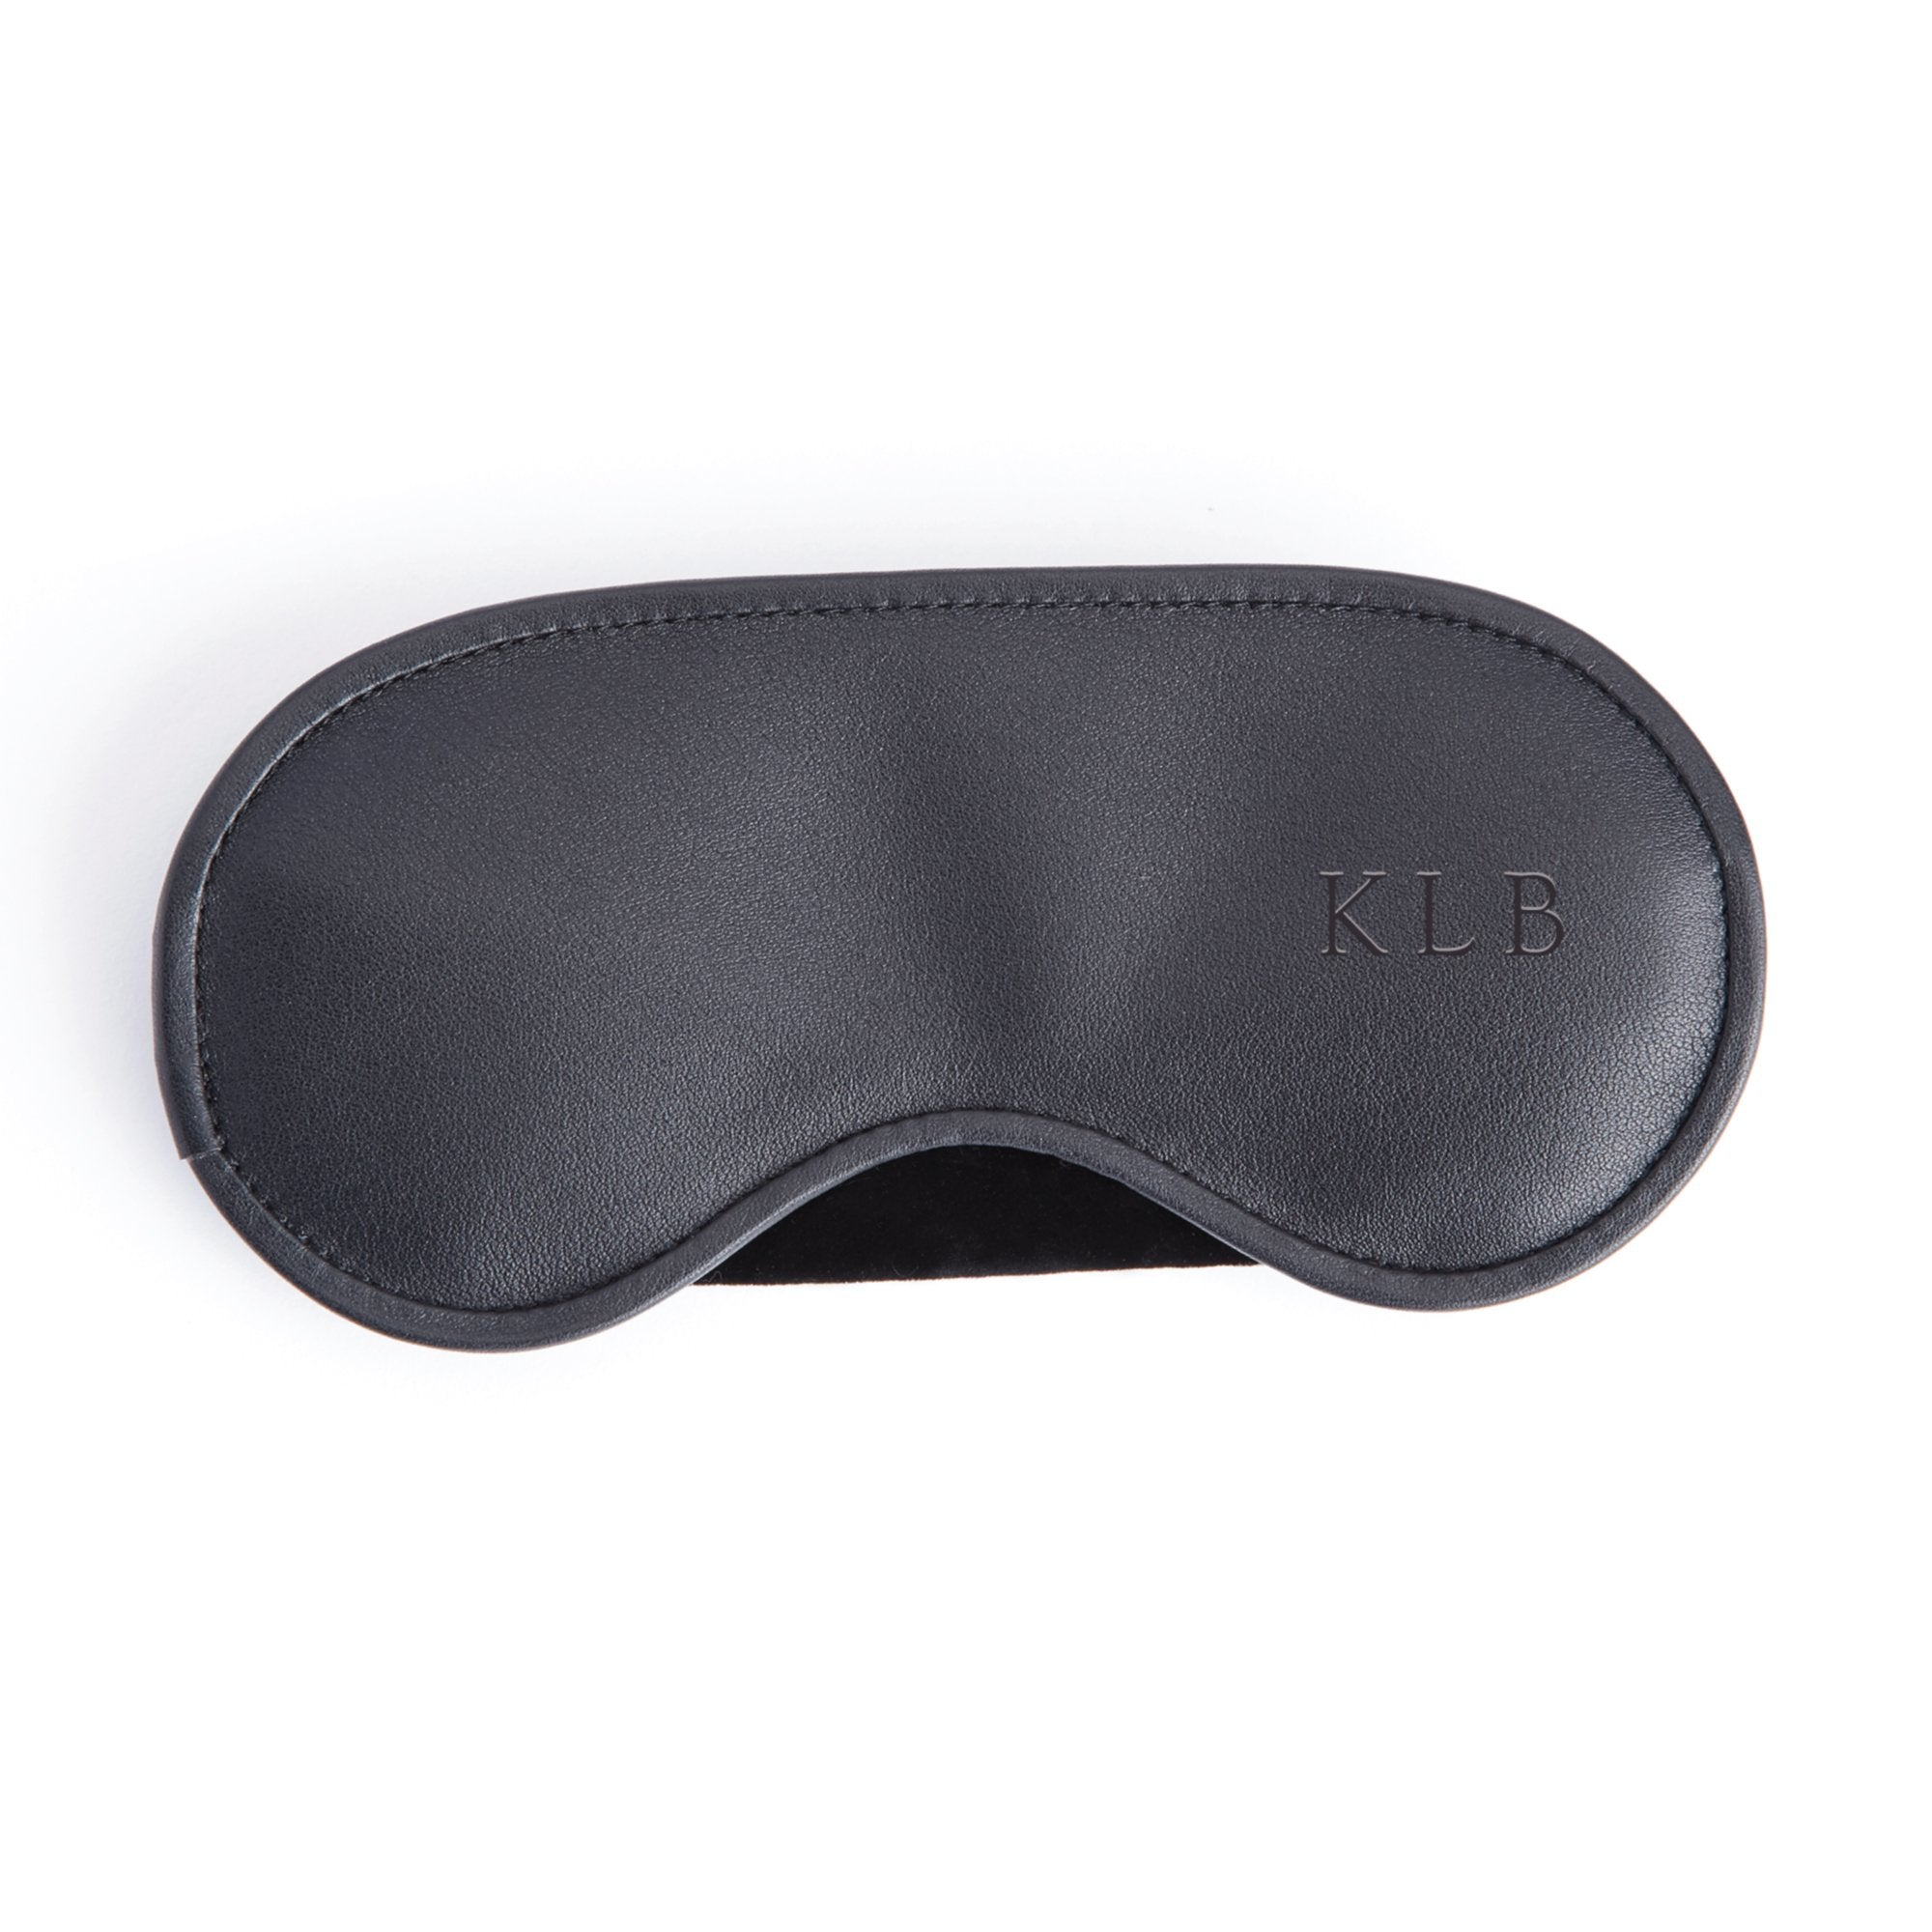 Royce Leather Personalized Eye Mask in Black